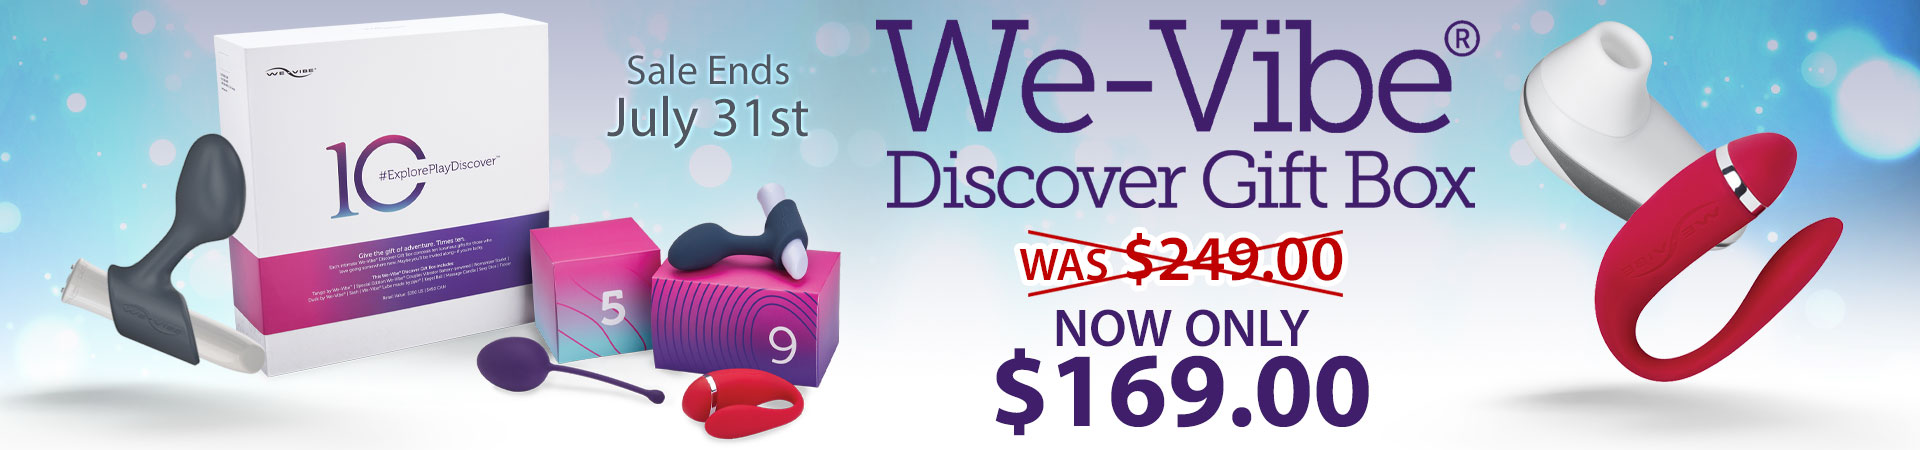 SheVibe Presents One Helluva Deal! The We-Vibe Discover 10 Piece Gift Box Is Now Only $169! Sale Ends July 31st - While Supplies Last.